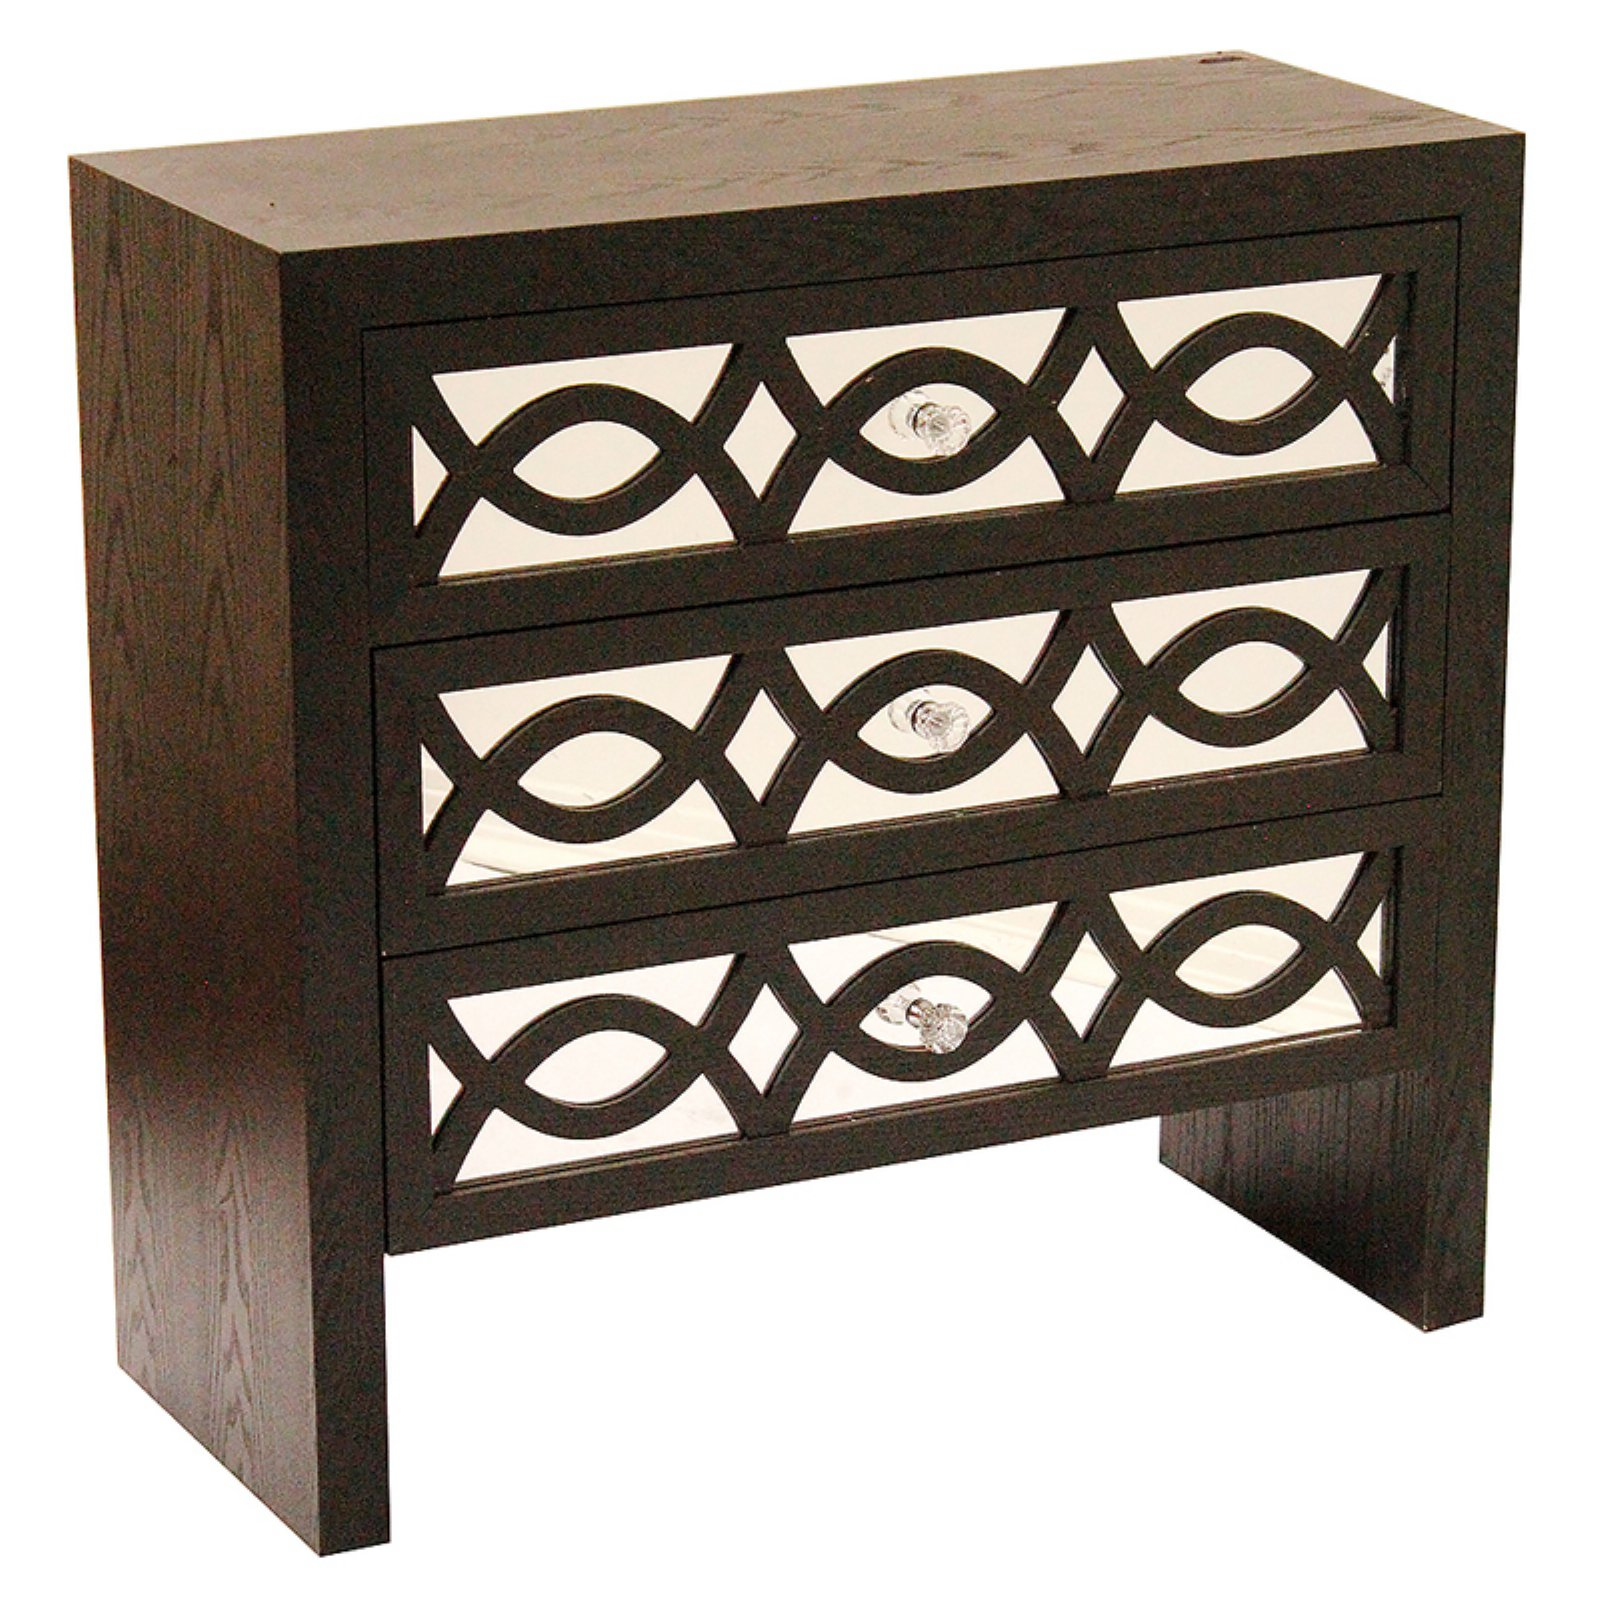 Heather Ann Creations Ellington Collection 3 Drawer Cabinet Console Table